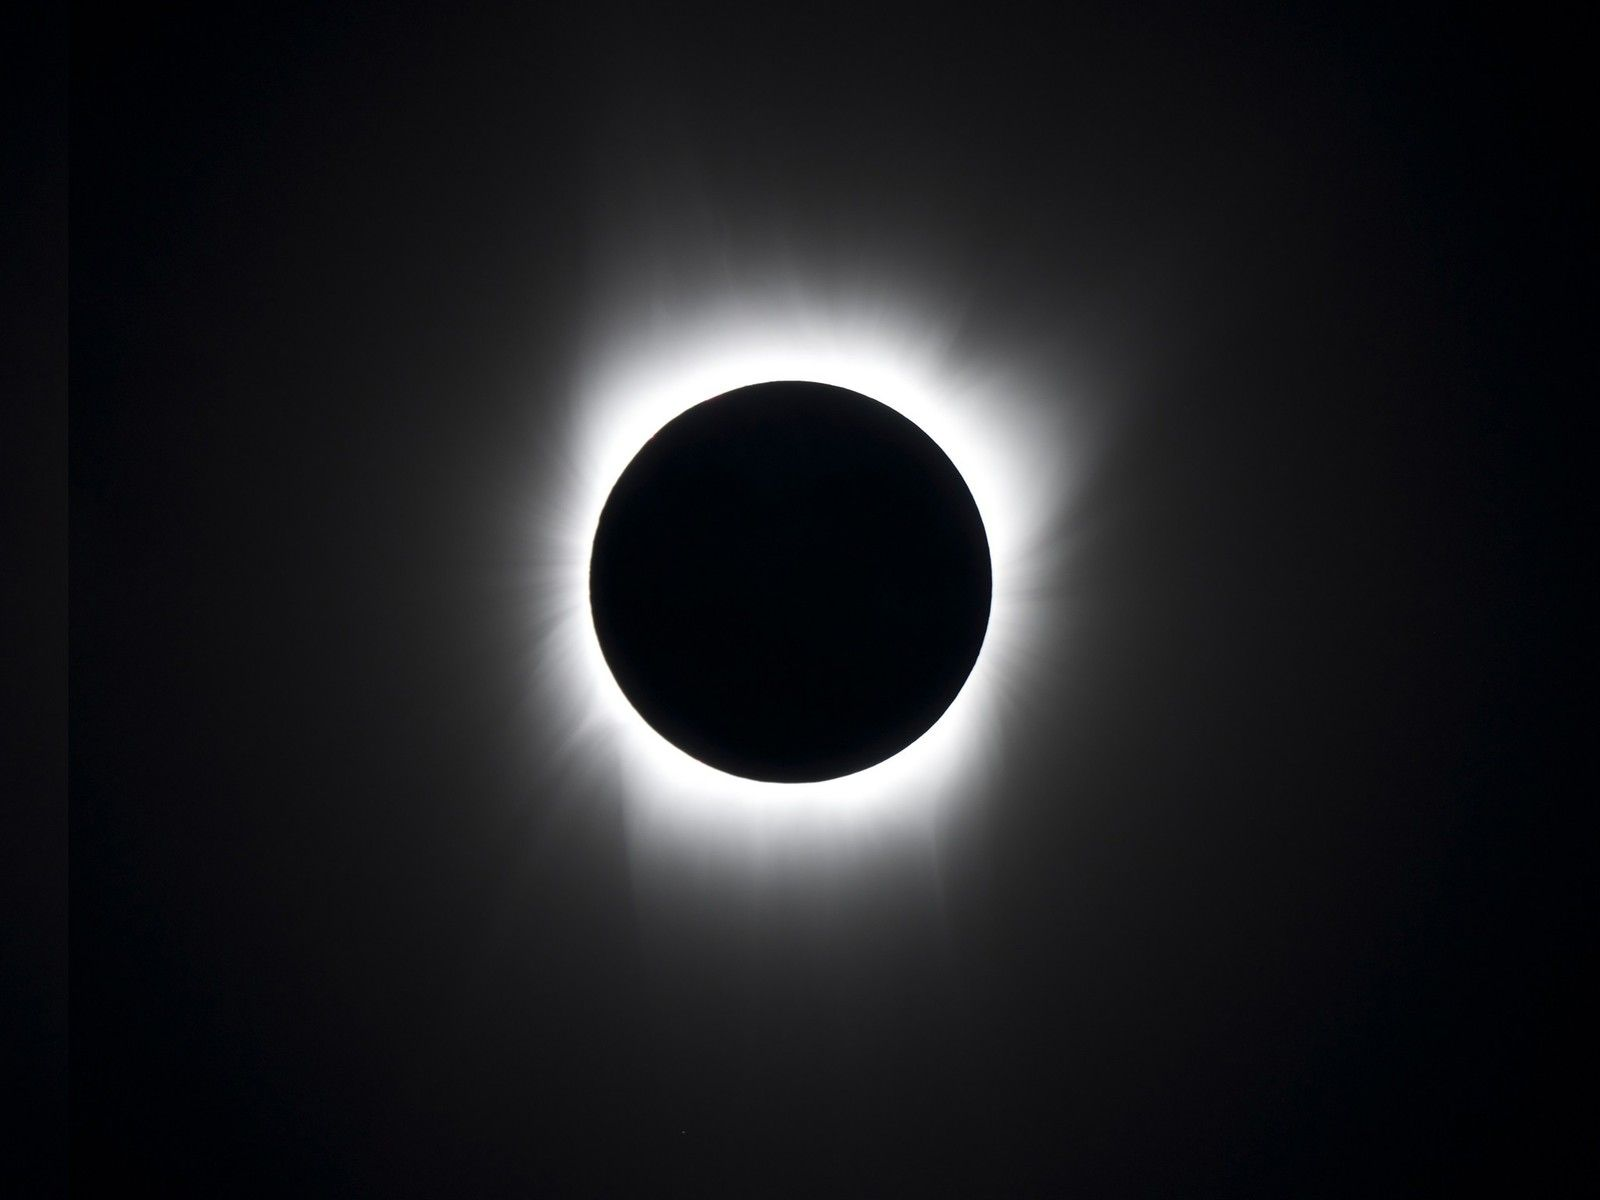 Blot out the sun with these eclipse wallpapers